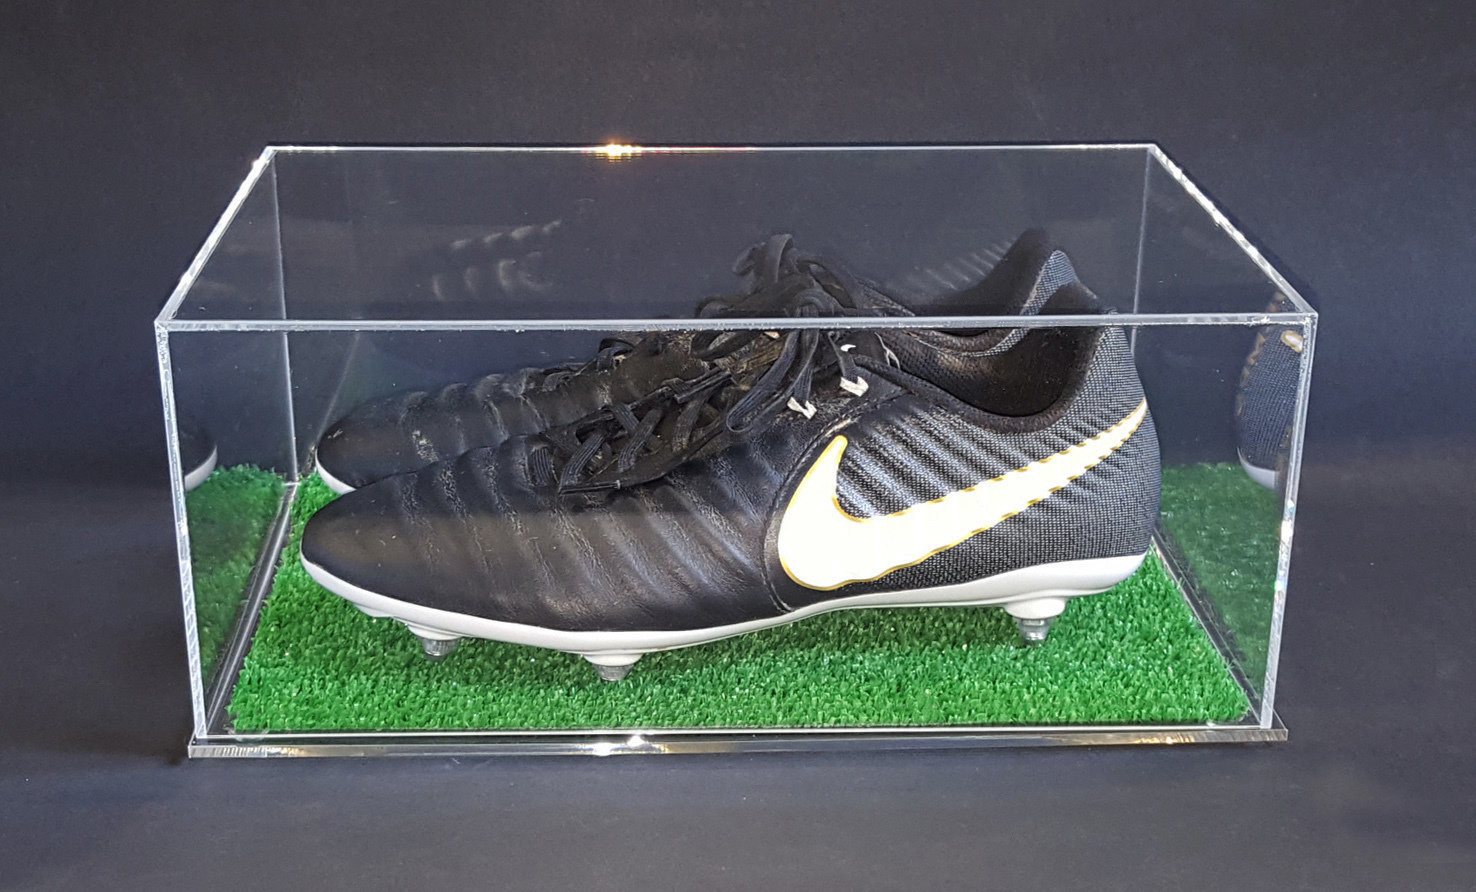 Espositore Per Scarpa da  Calcio Display Case for Boot Soccer Football